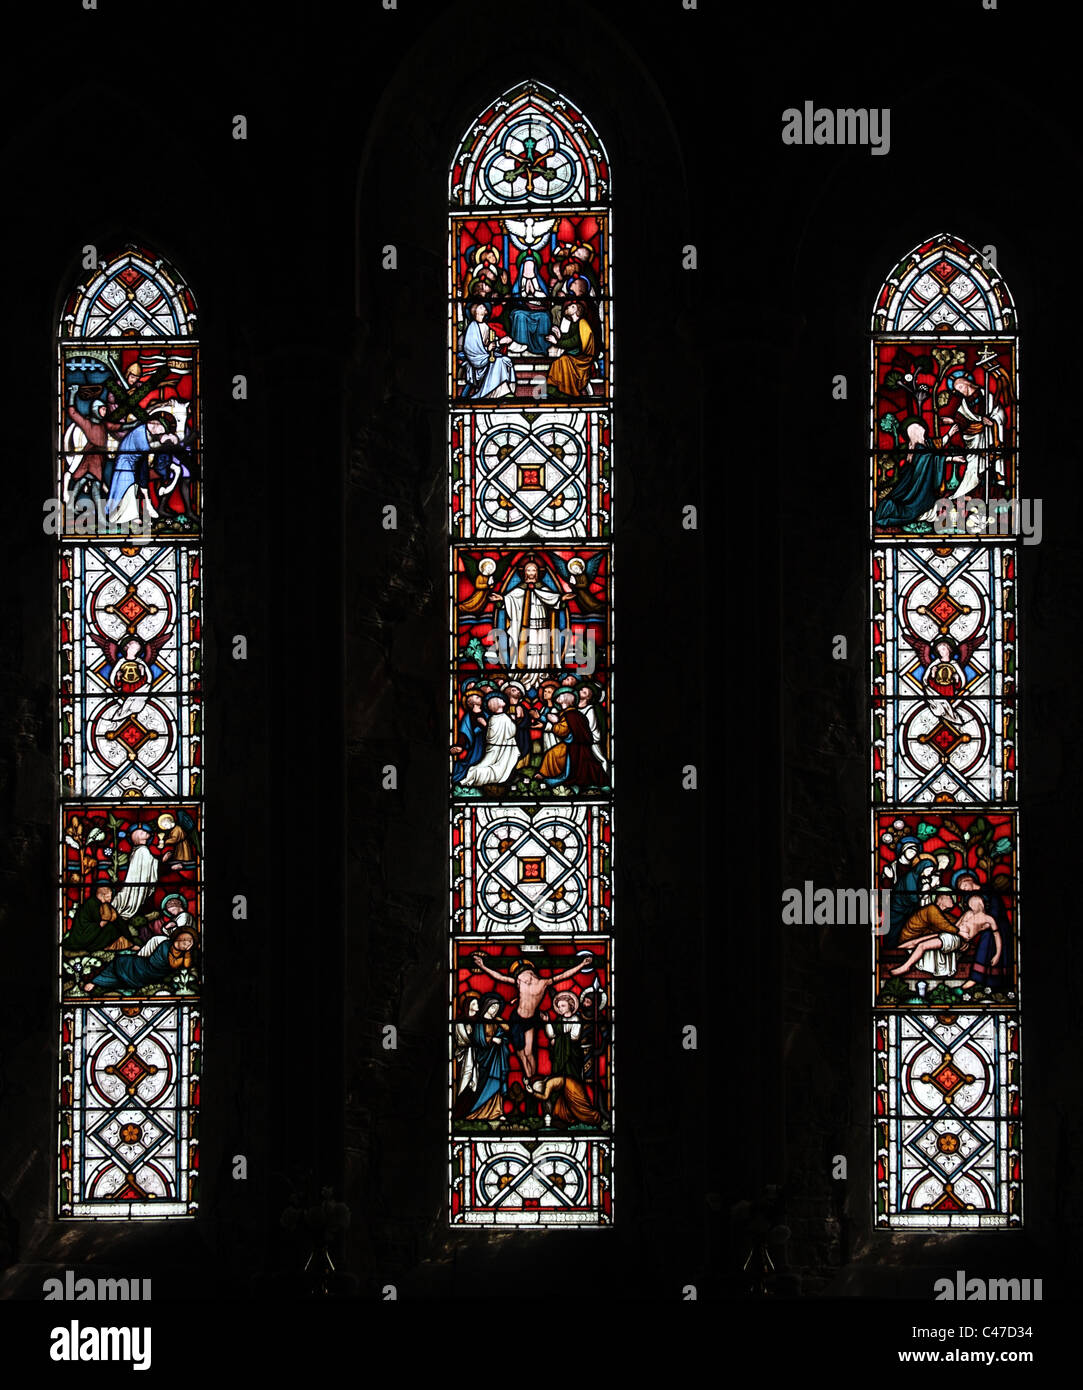 A stained glass window by Clayton and Bell depicting the Passion of Christ, St Nicholas's Church, Tackley, Oxfordshire - Stock Image